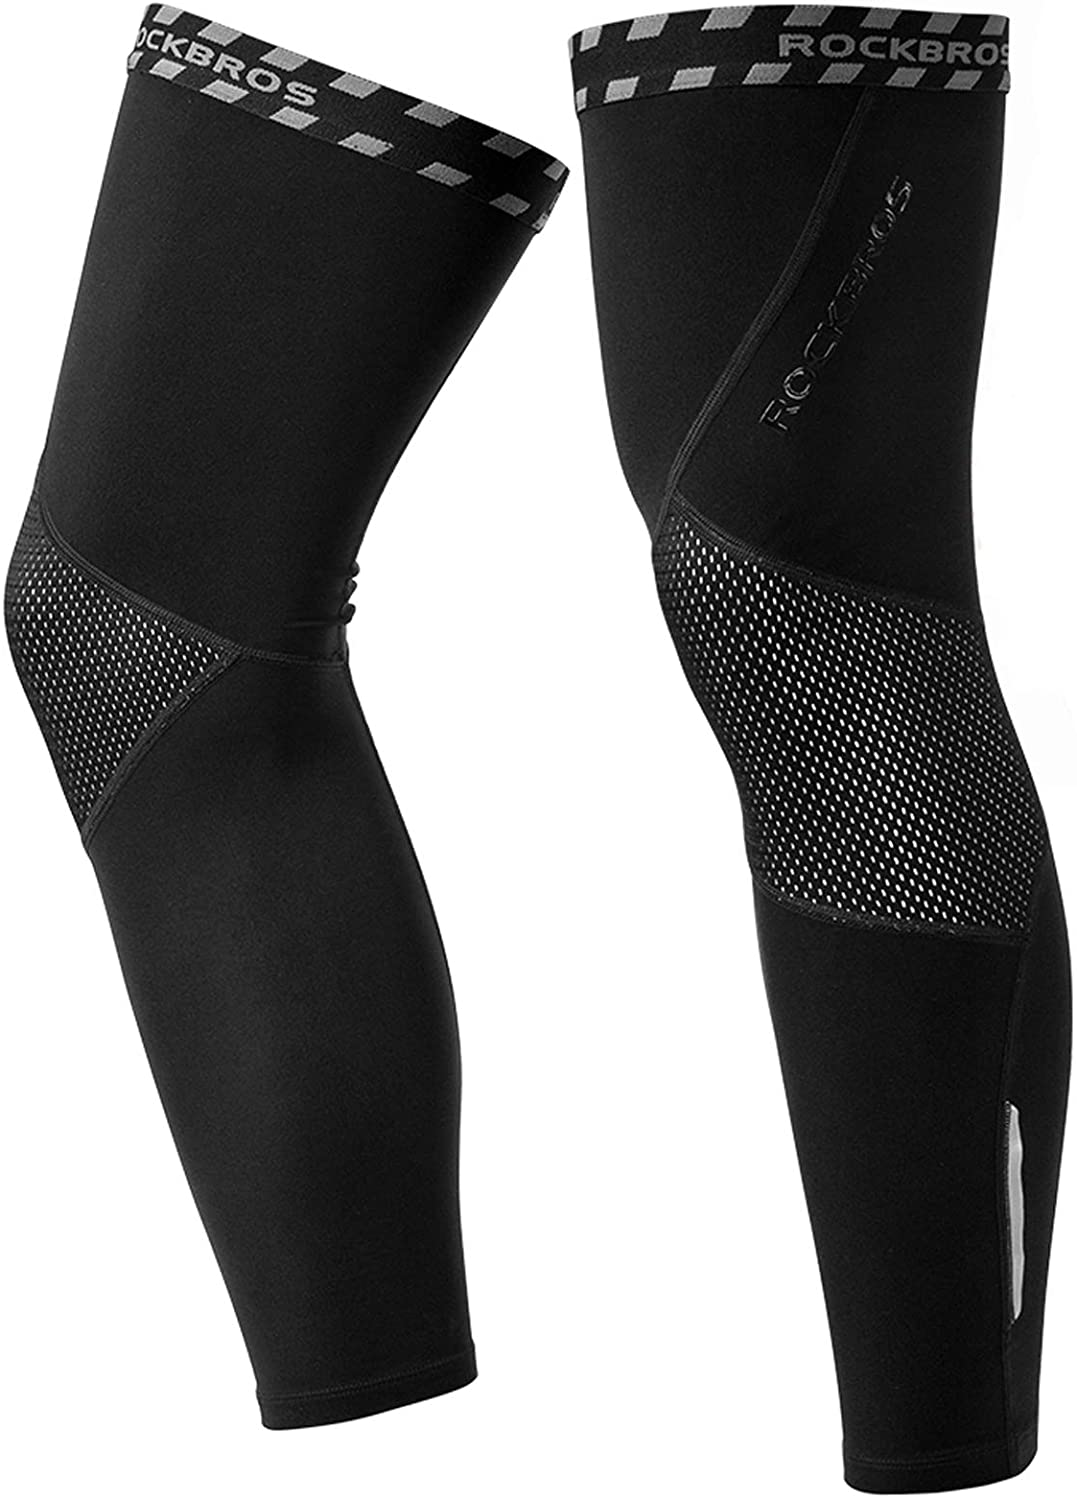 ROCK BROS Cycling Leg Warmers Thermal Long Leg Sleeves for Men Women Legwarmer: Clothing